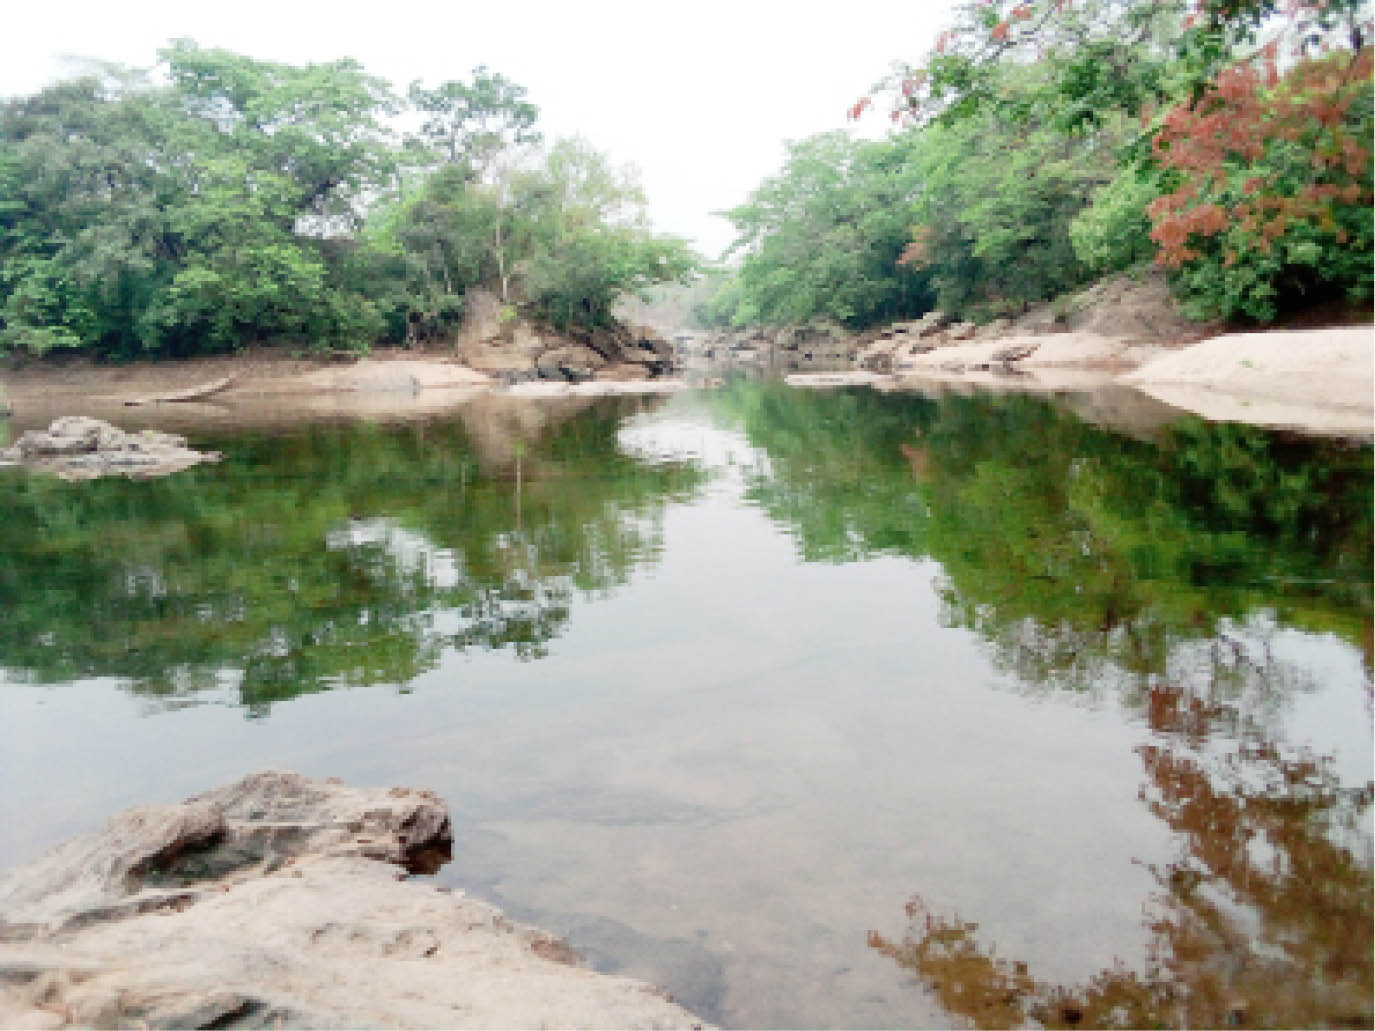 River Kam which housed the hippos pond inside the park